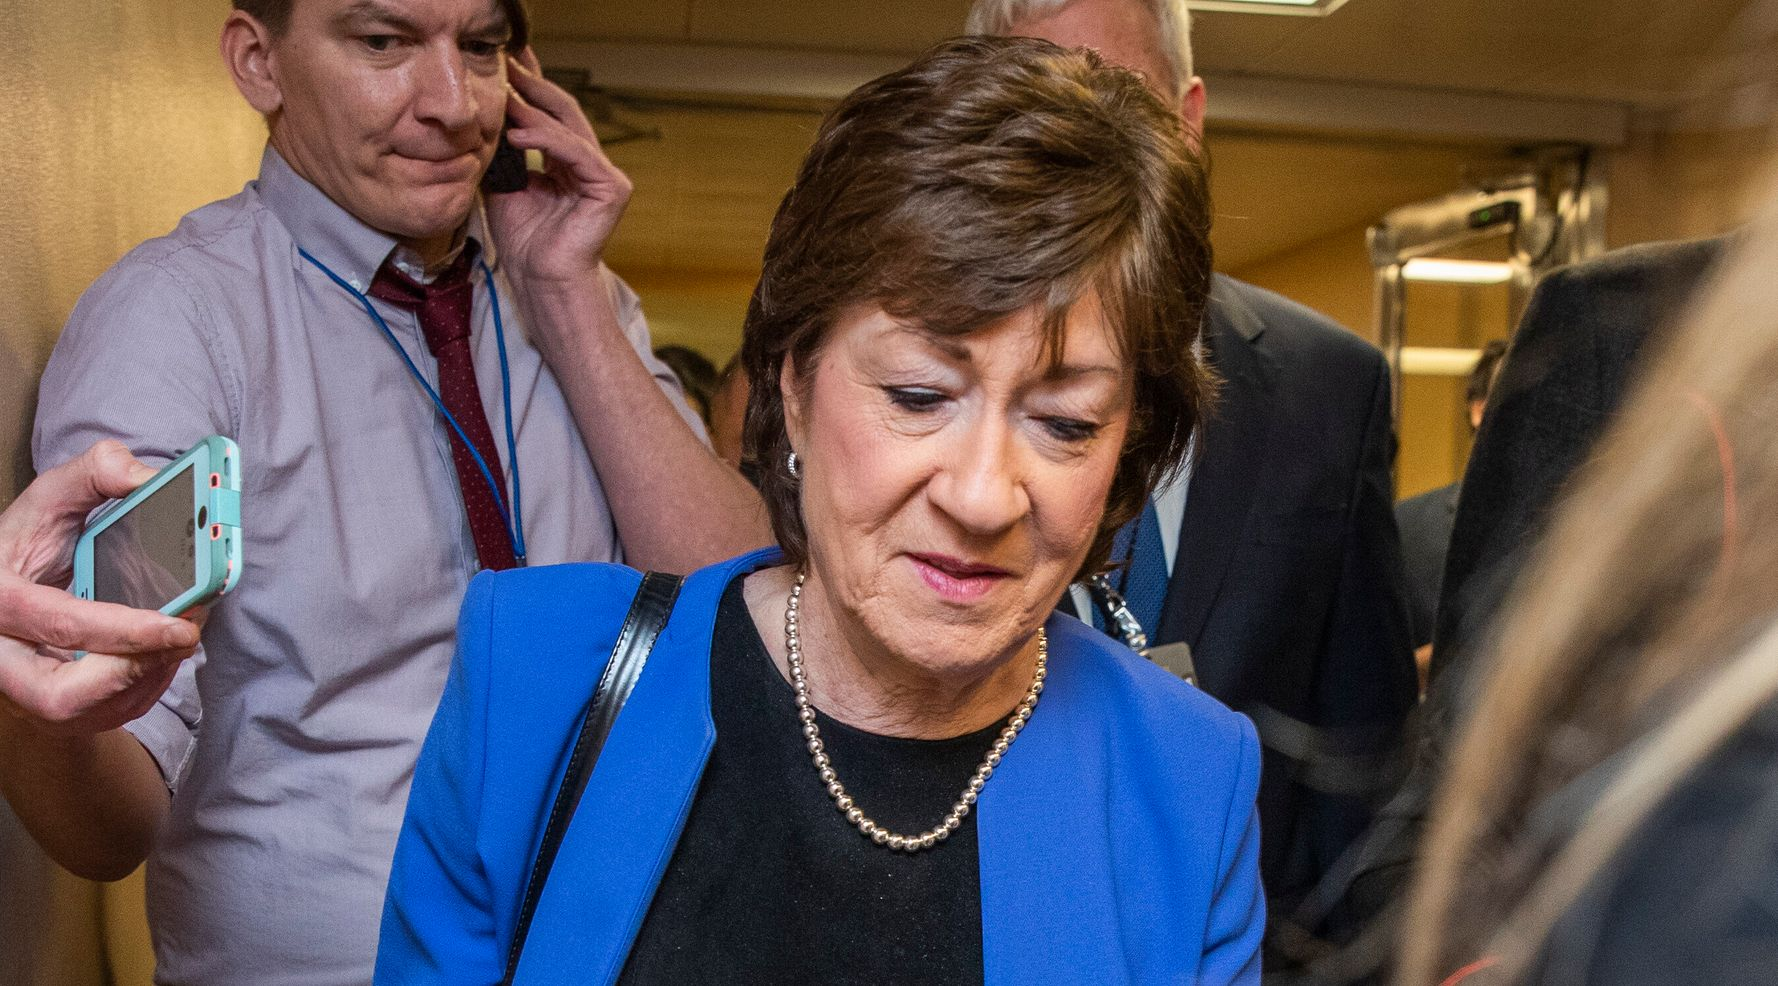 Westlake Legal Group 5e33a5412400005c0a0b76b3 Sen. Susan Collins Says She'll Vote For Witnesses In Impeachment Trial